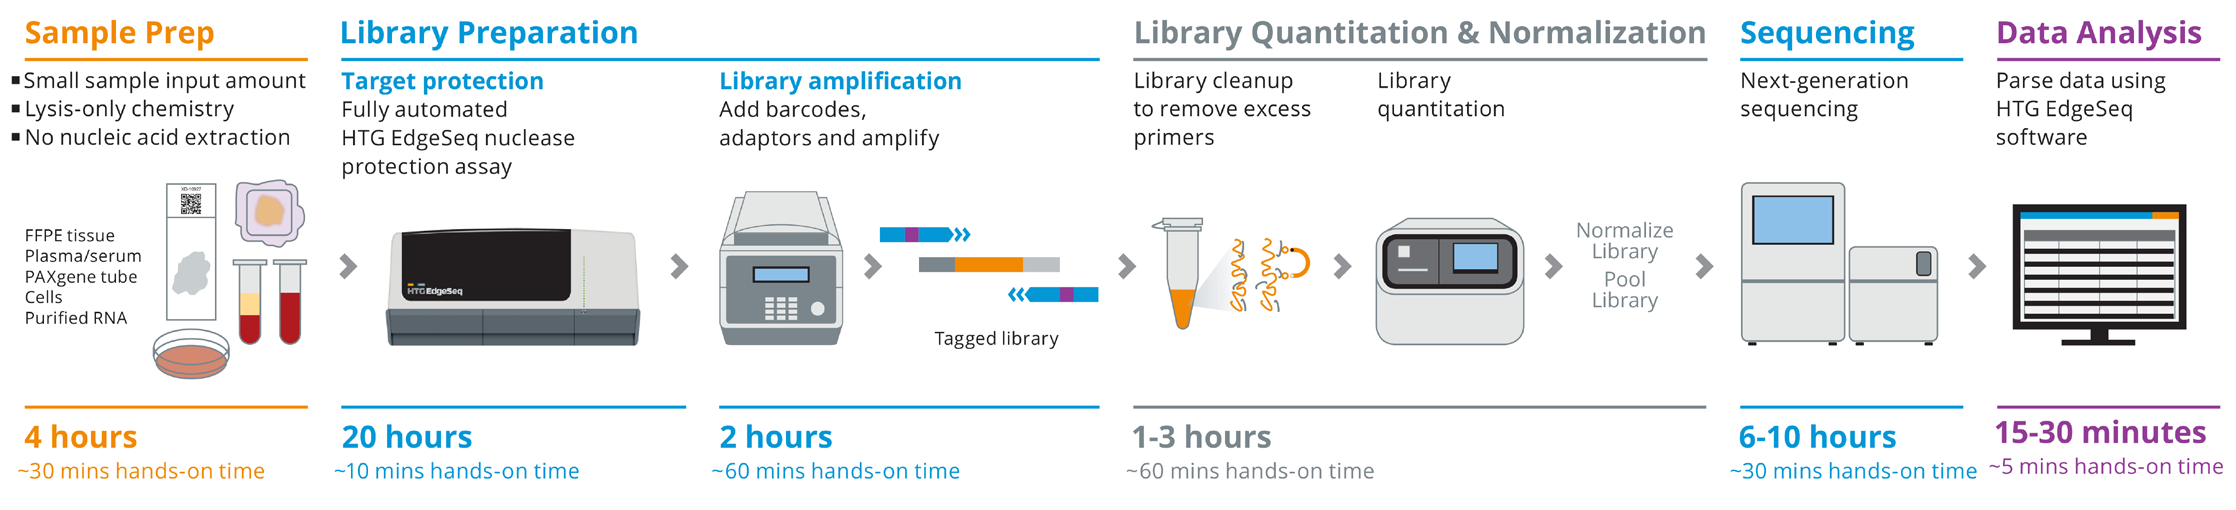 The HTG EdgeSeq system is an automated chemistry and workflow solution based on HTG Molecular Diagnostics (HTG) extraction-free sample preparation technology and quantitative nuclease protection